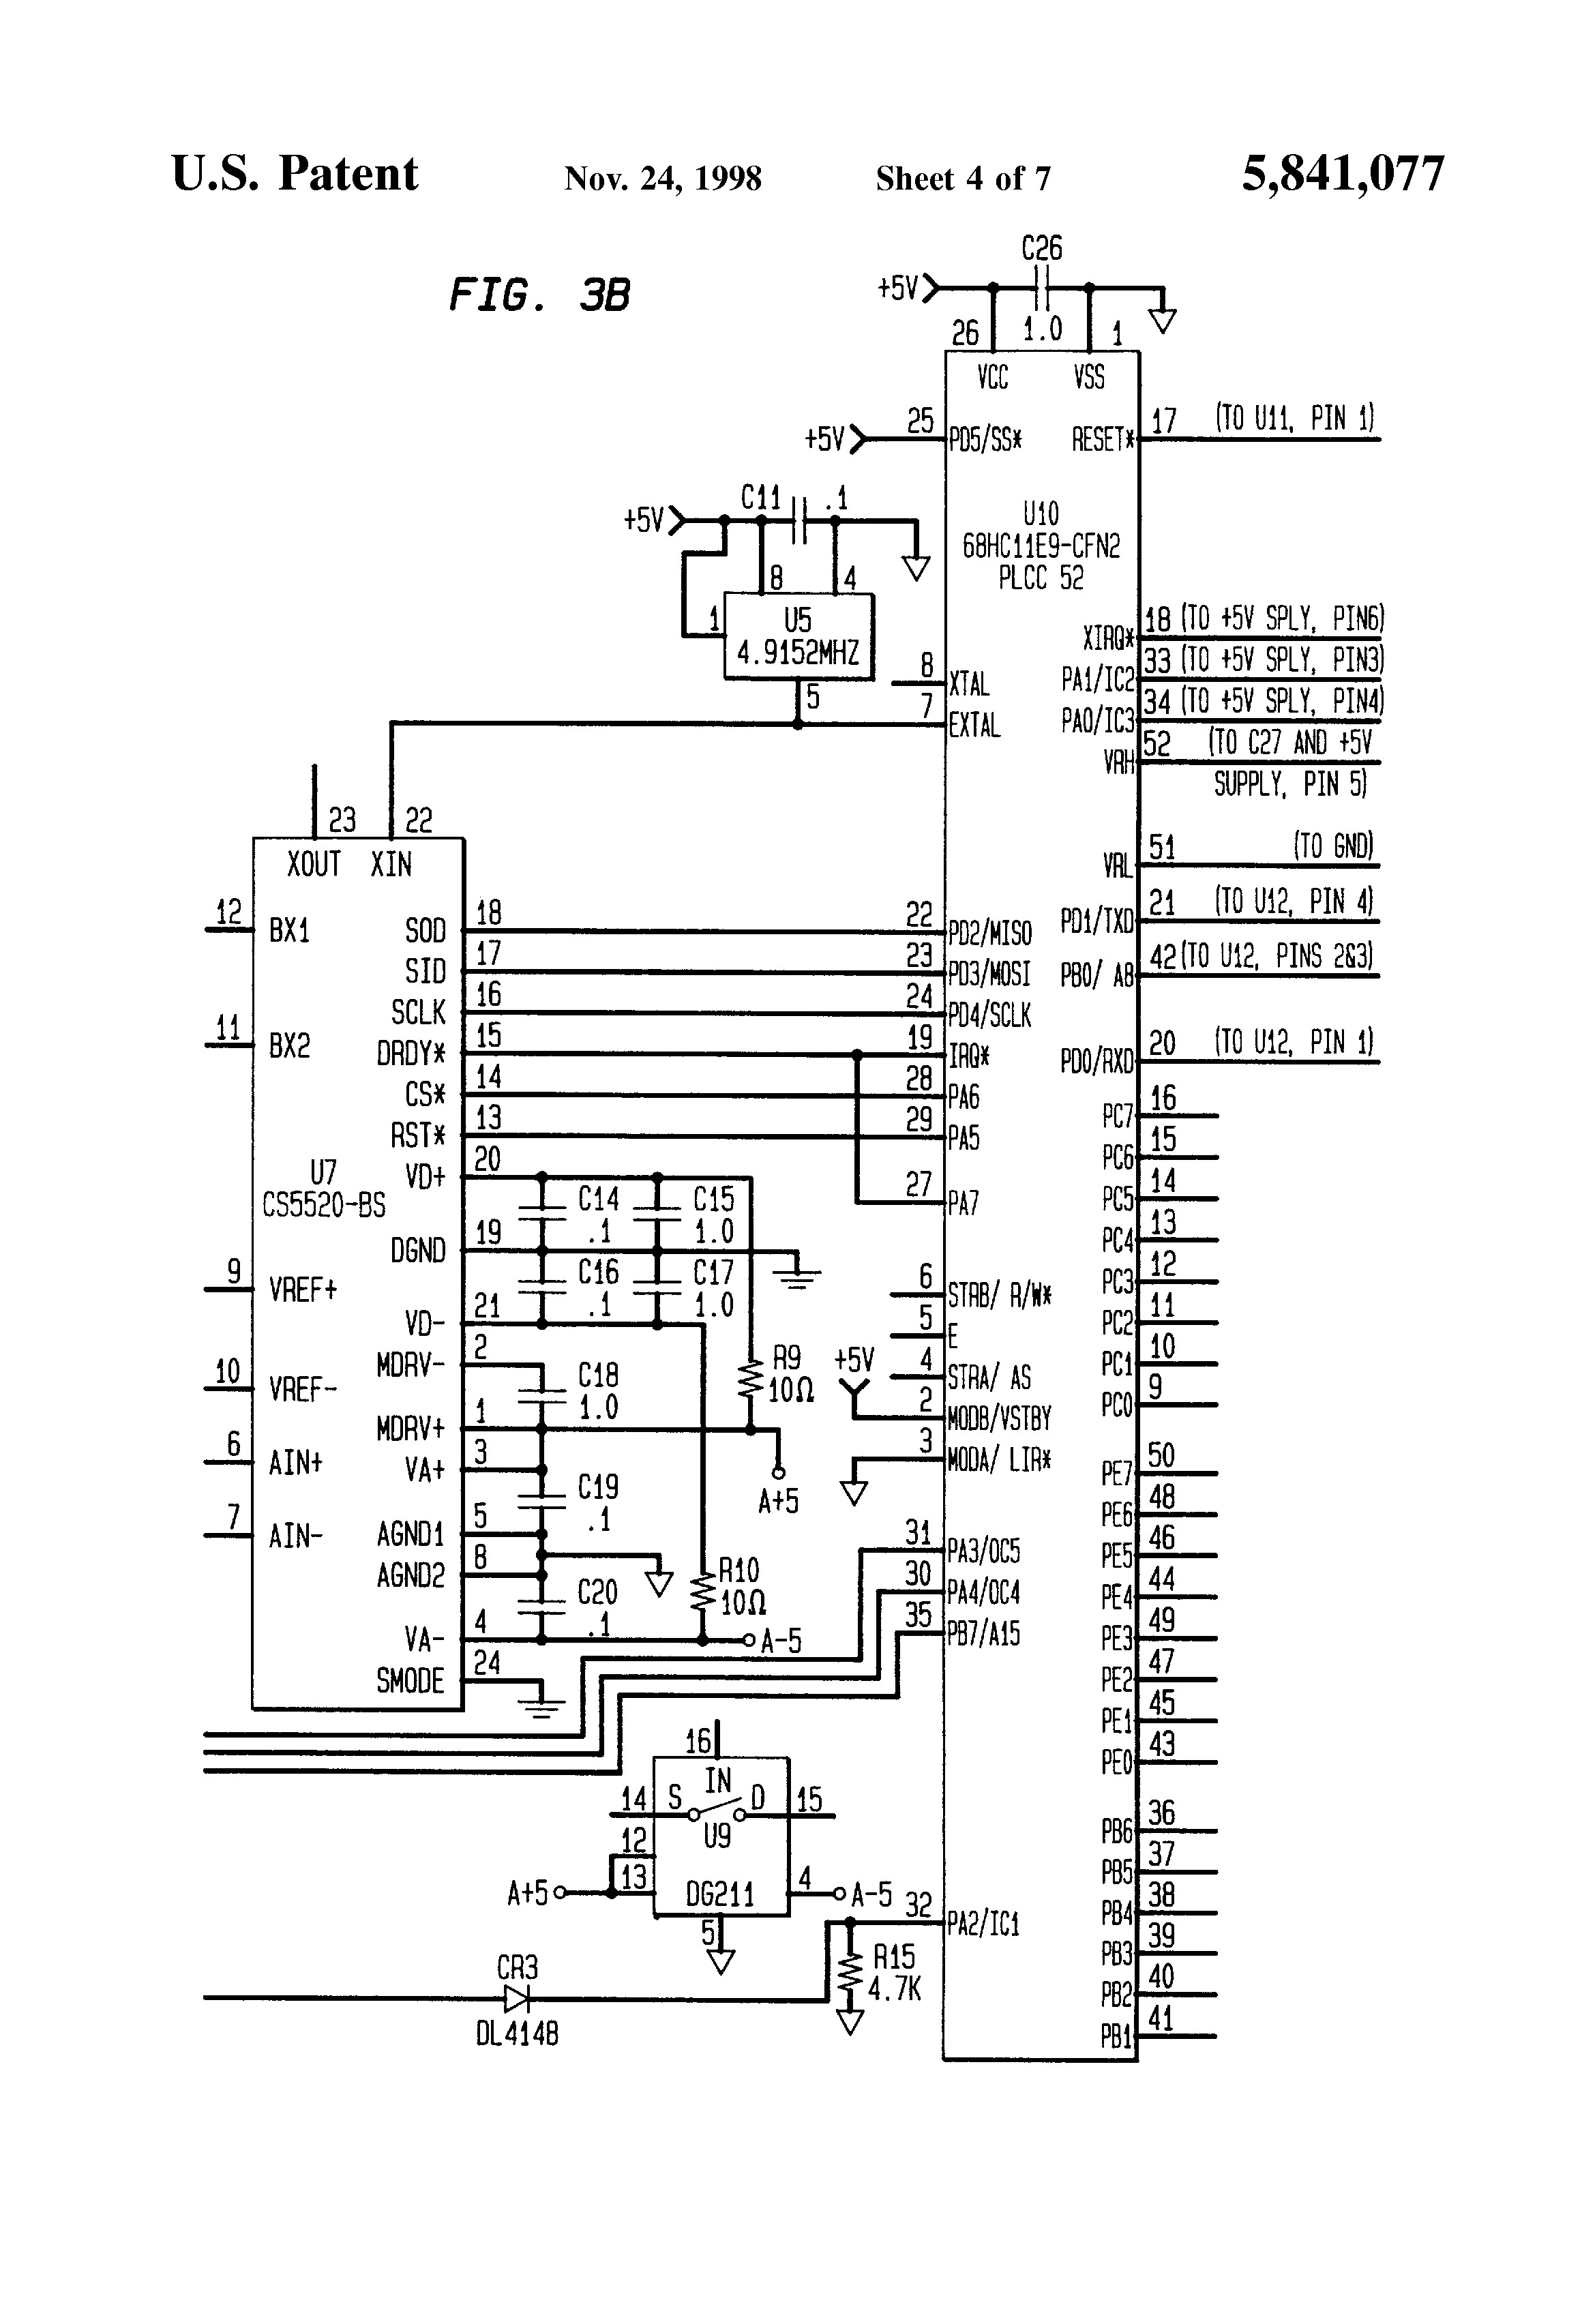 Wiring 911ep Diagram Td Wl36rab Wiring An Electrical Outlet ... on